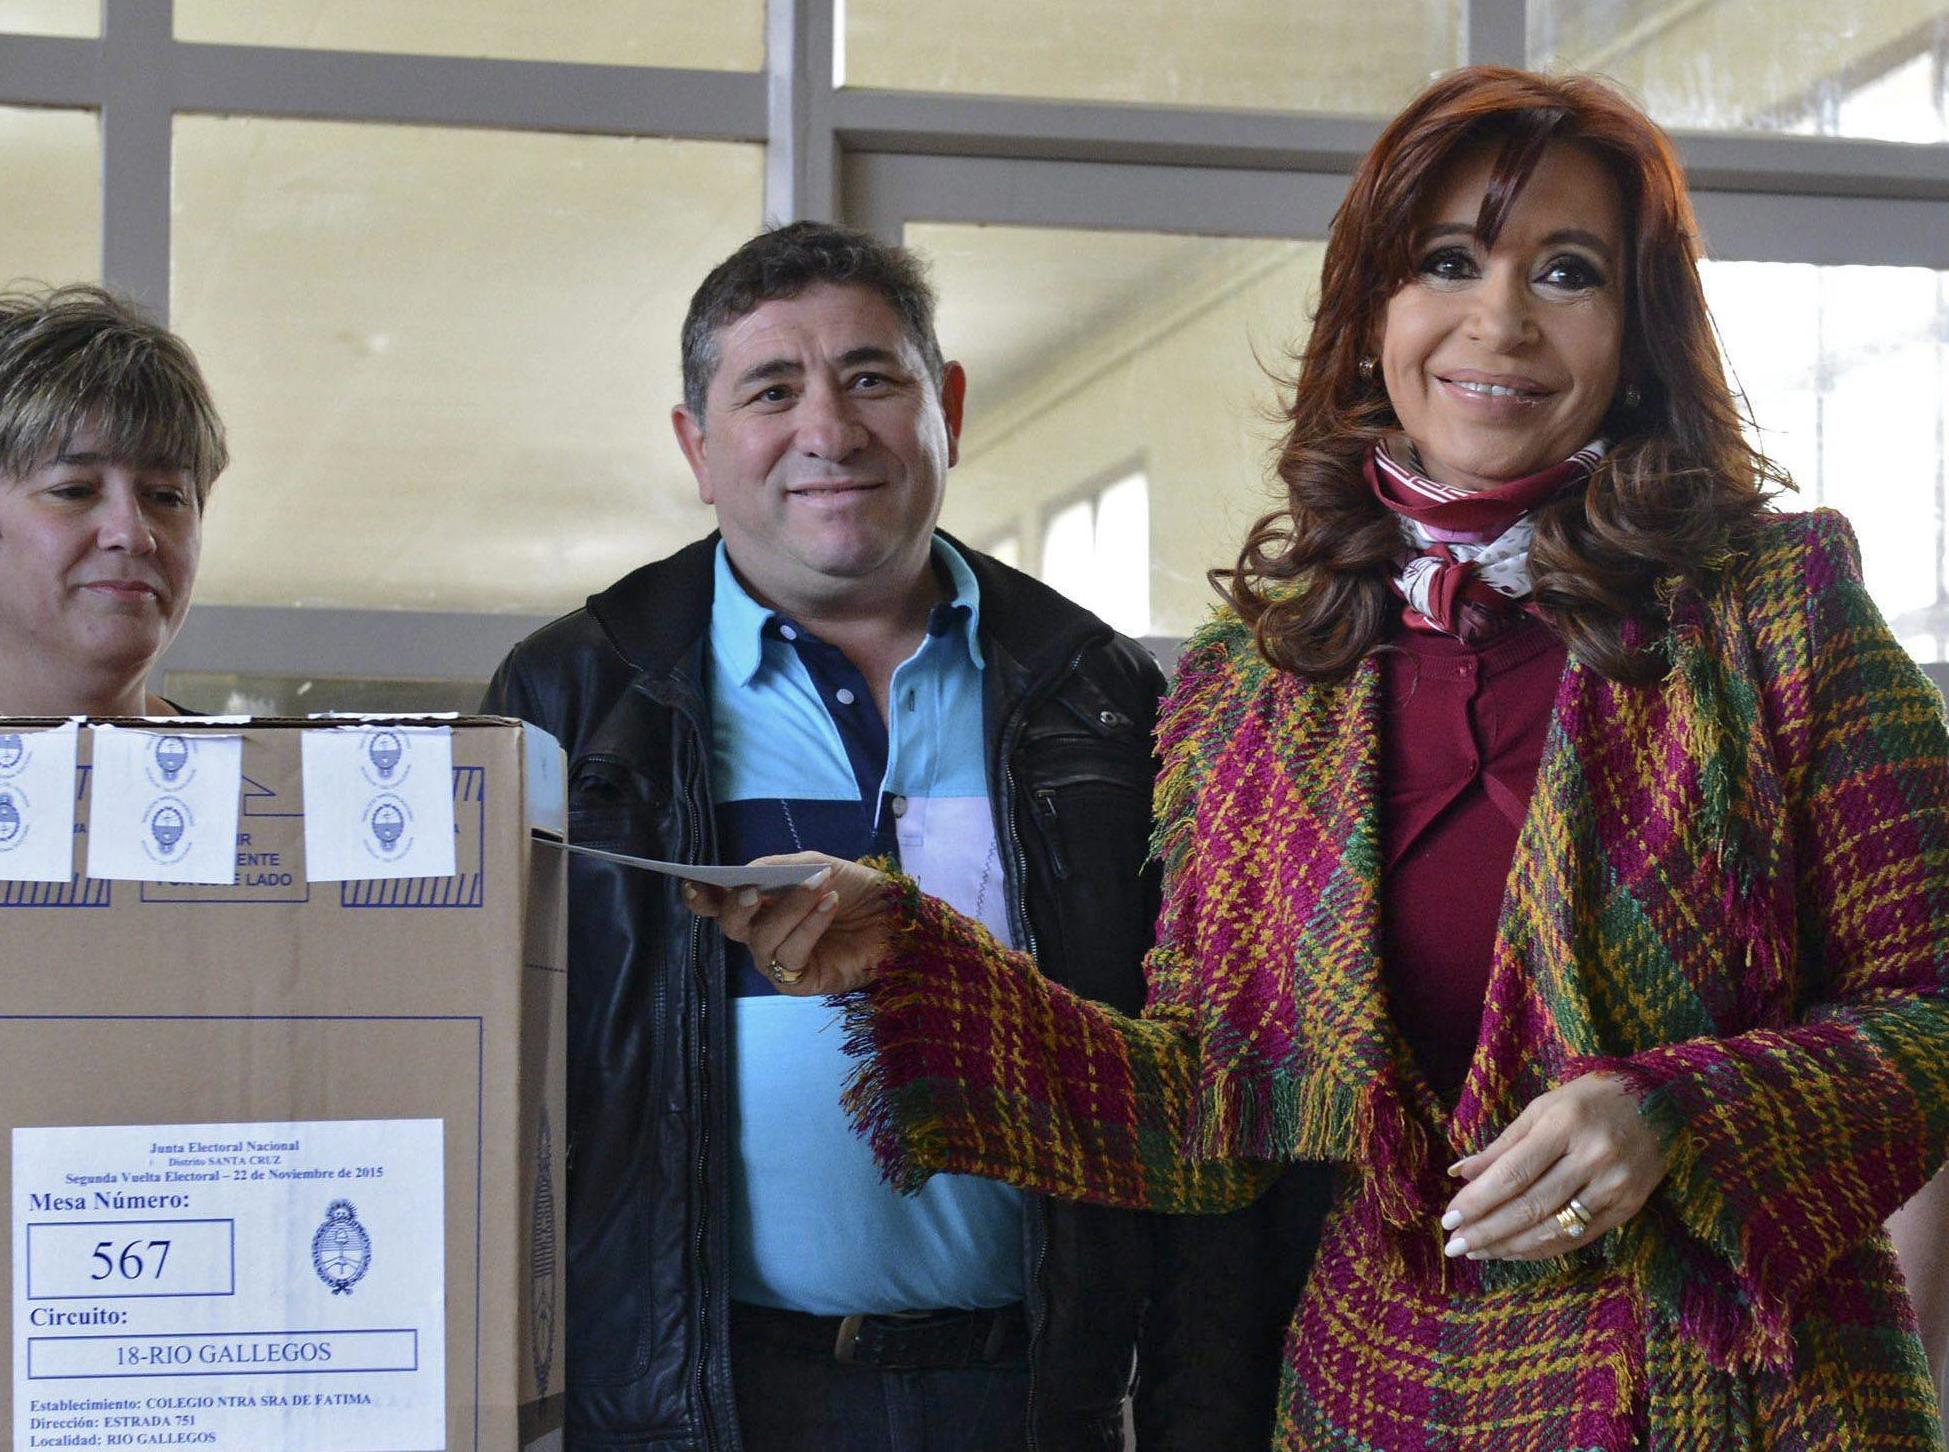 A handout picture provided by Presidency of Argentina of Argentinian President Cristina Fernandez de Kirchner (R) casting her vote as Argentina is holding its first presidential run-off election